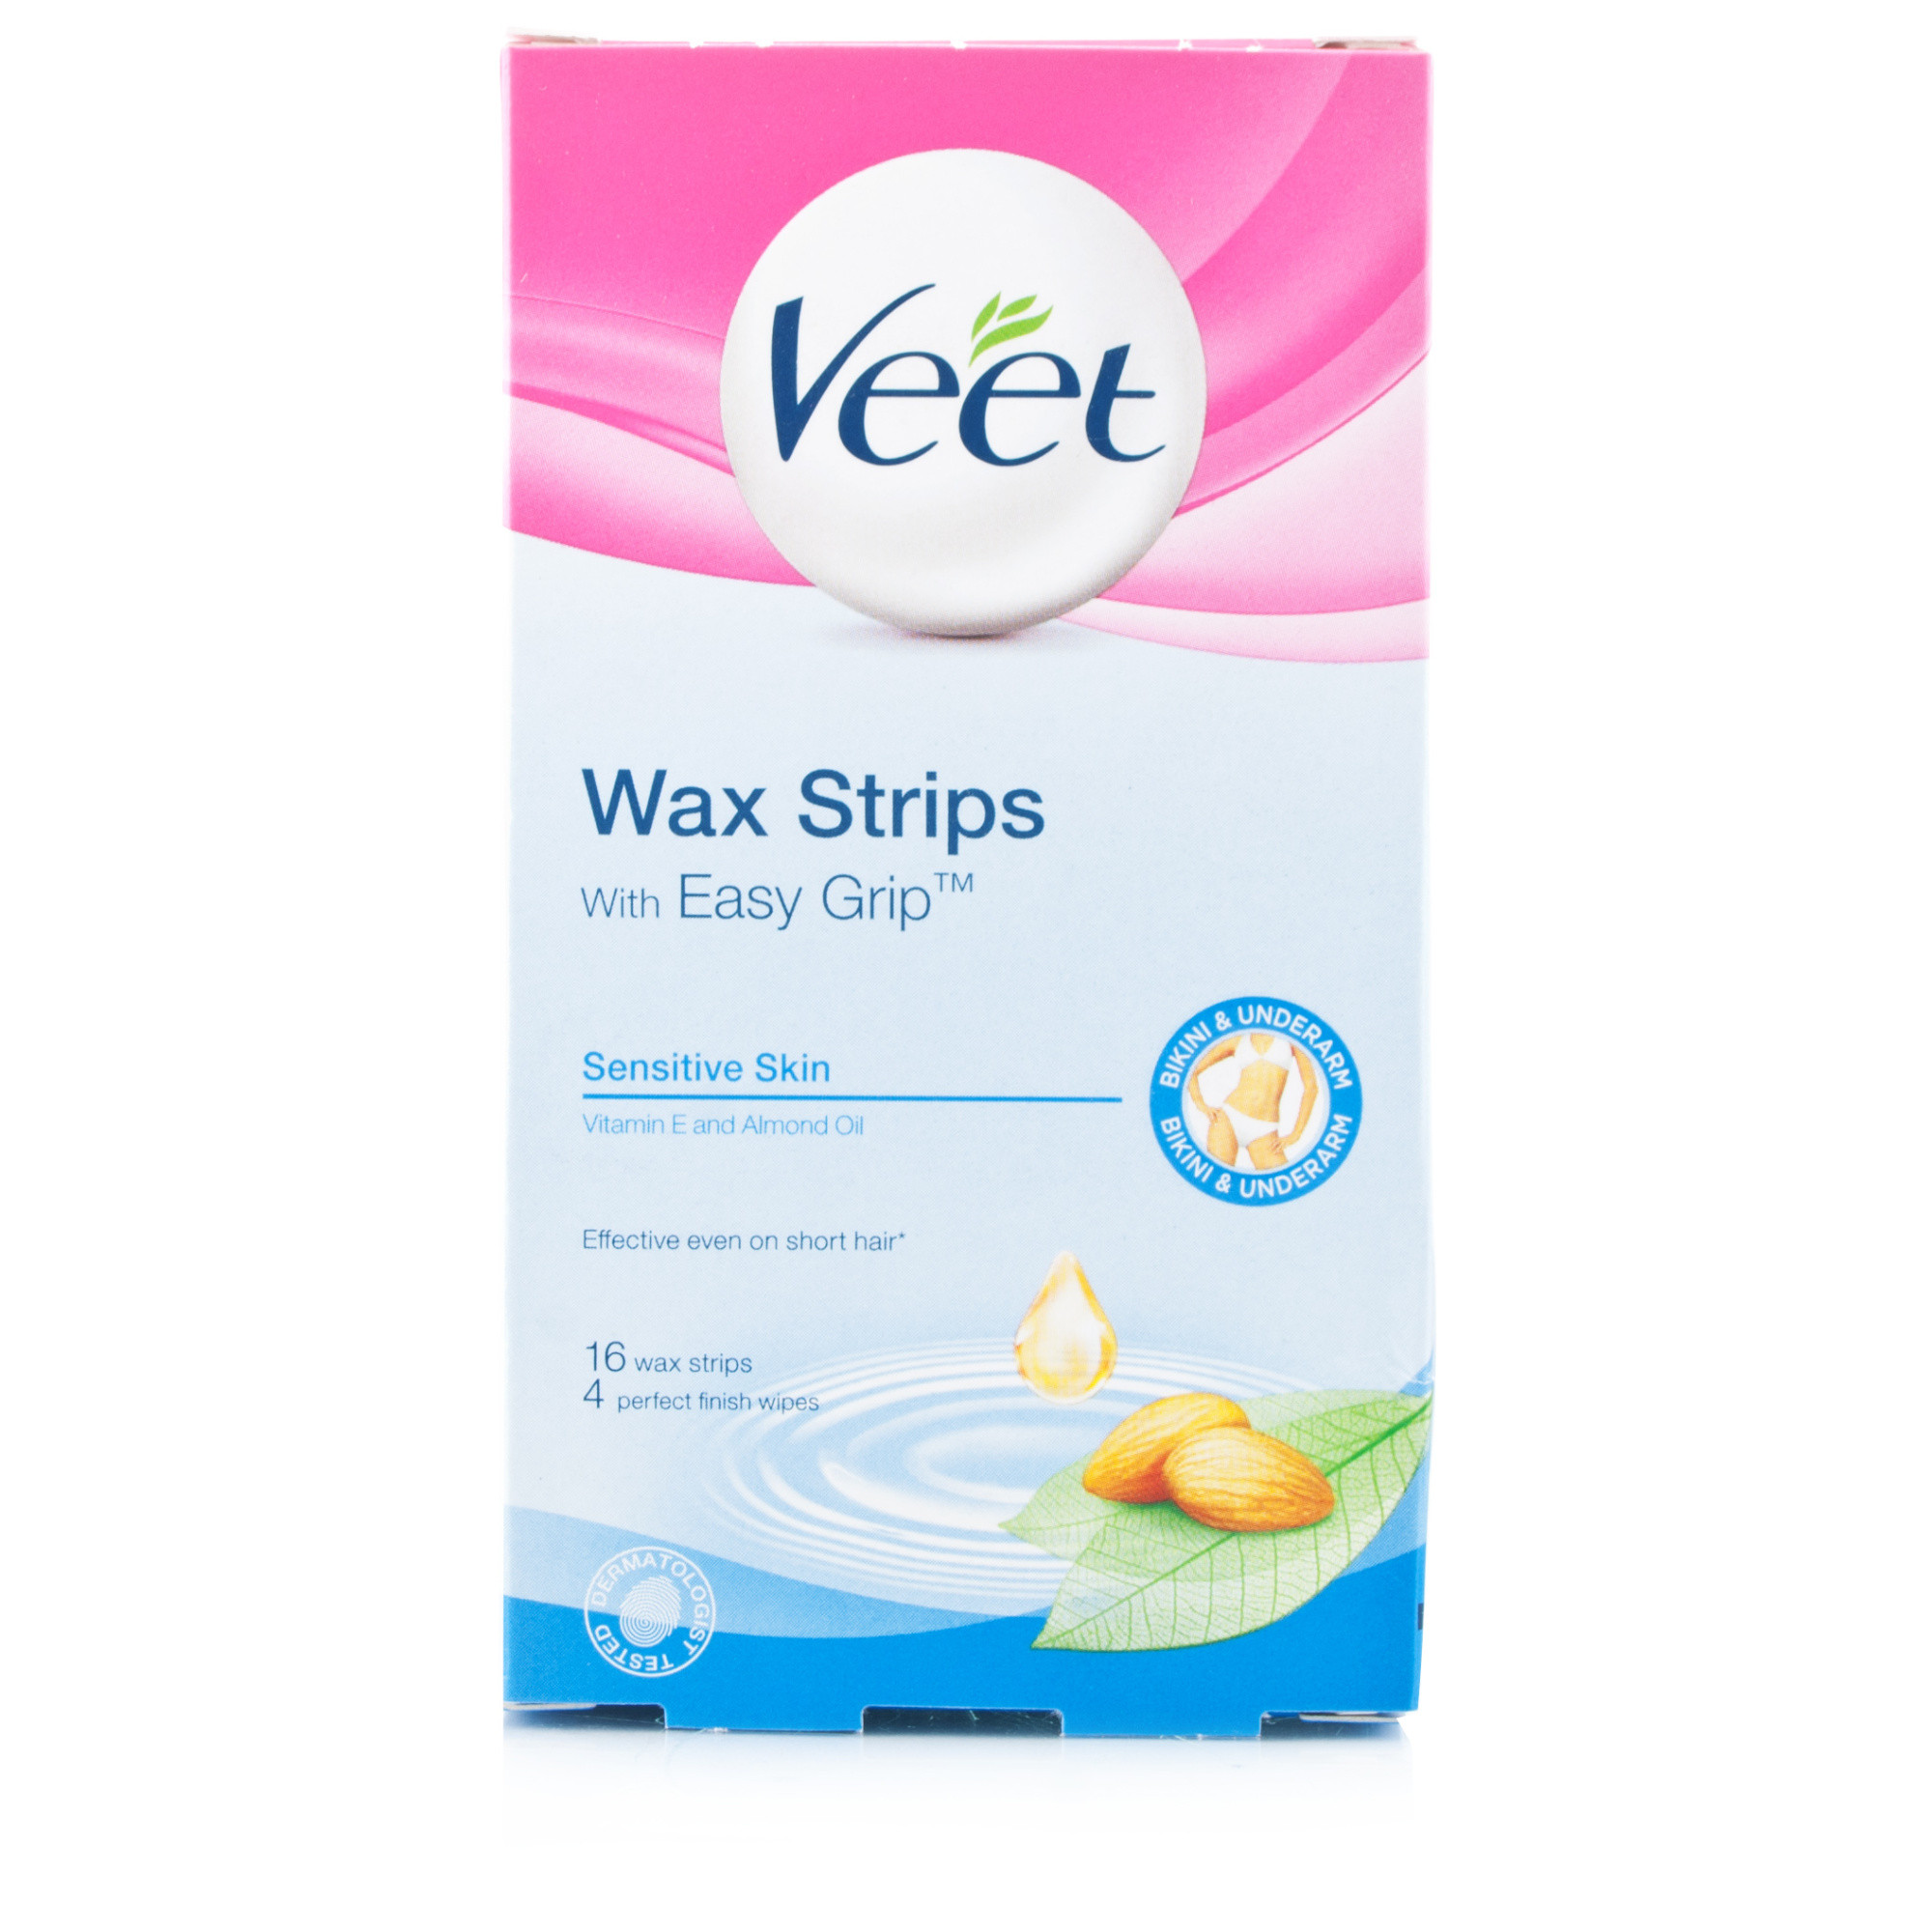 Veet Bikini & Underarm Wax Strips Sensitive